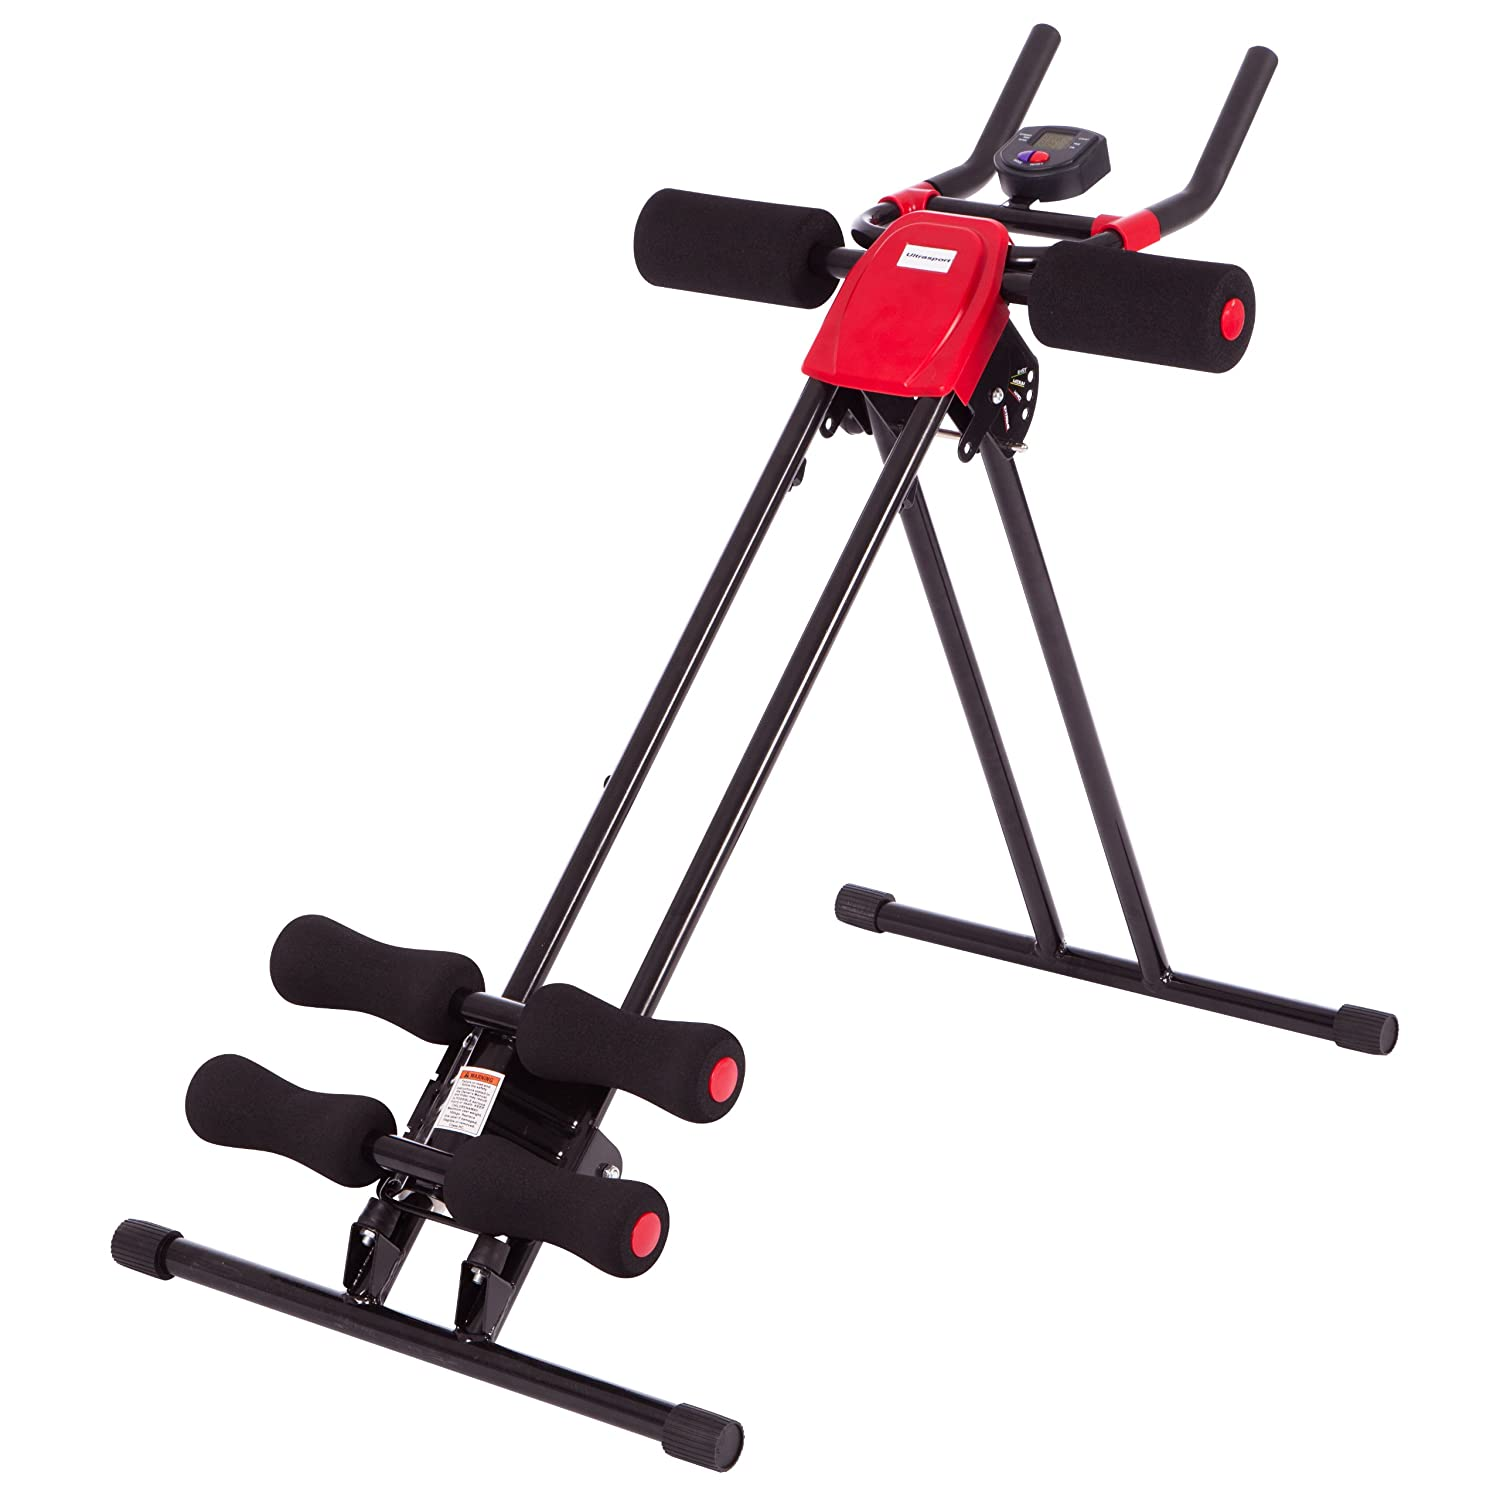 Ultrasport ultra 150 fitness power ab trainer addominali for Appareil sport maison